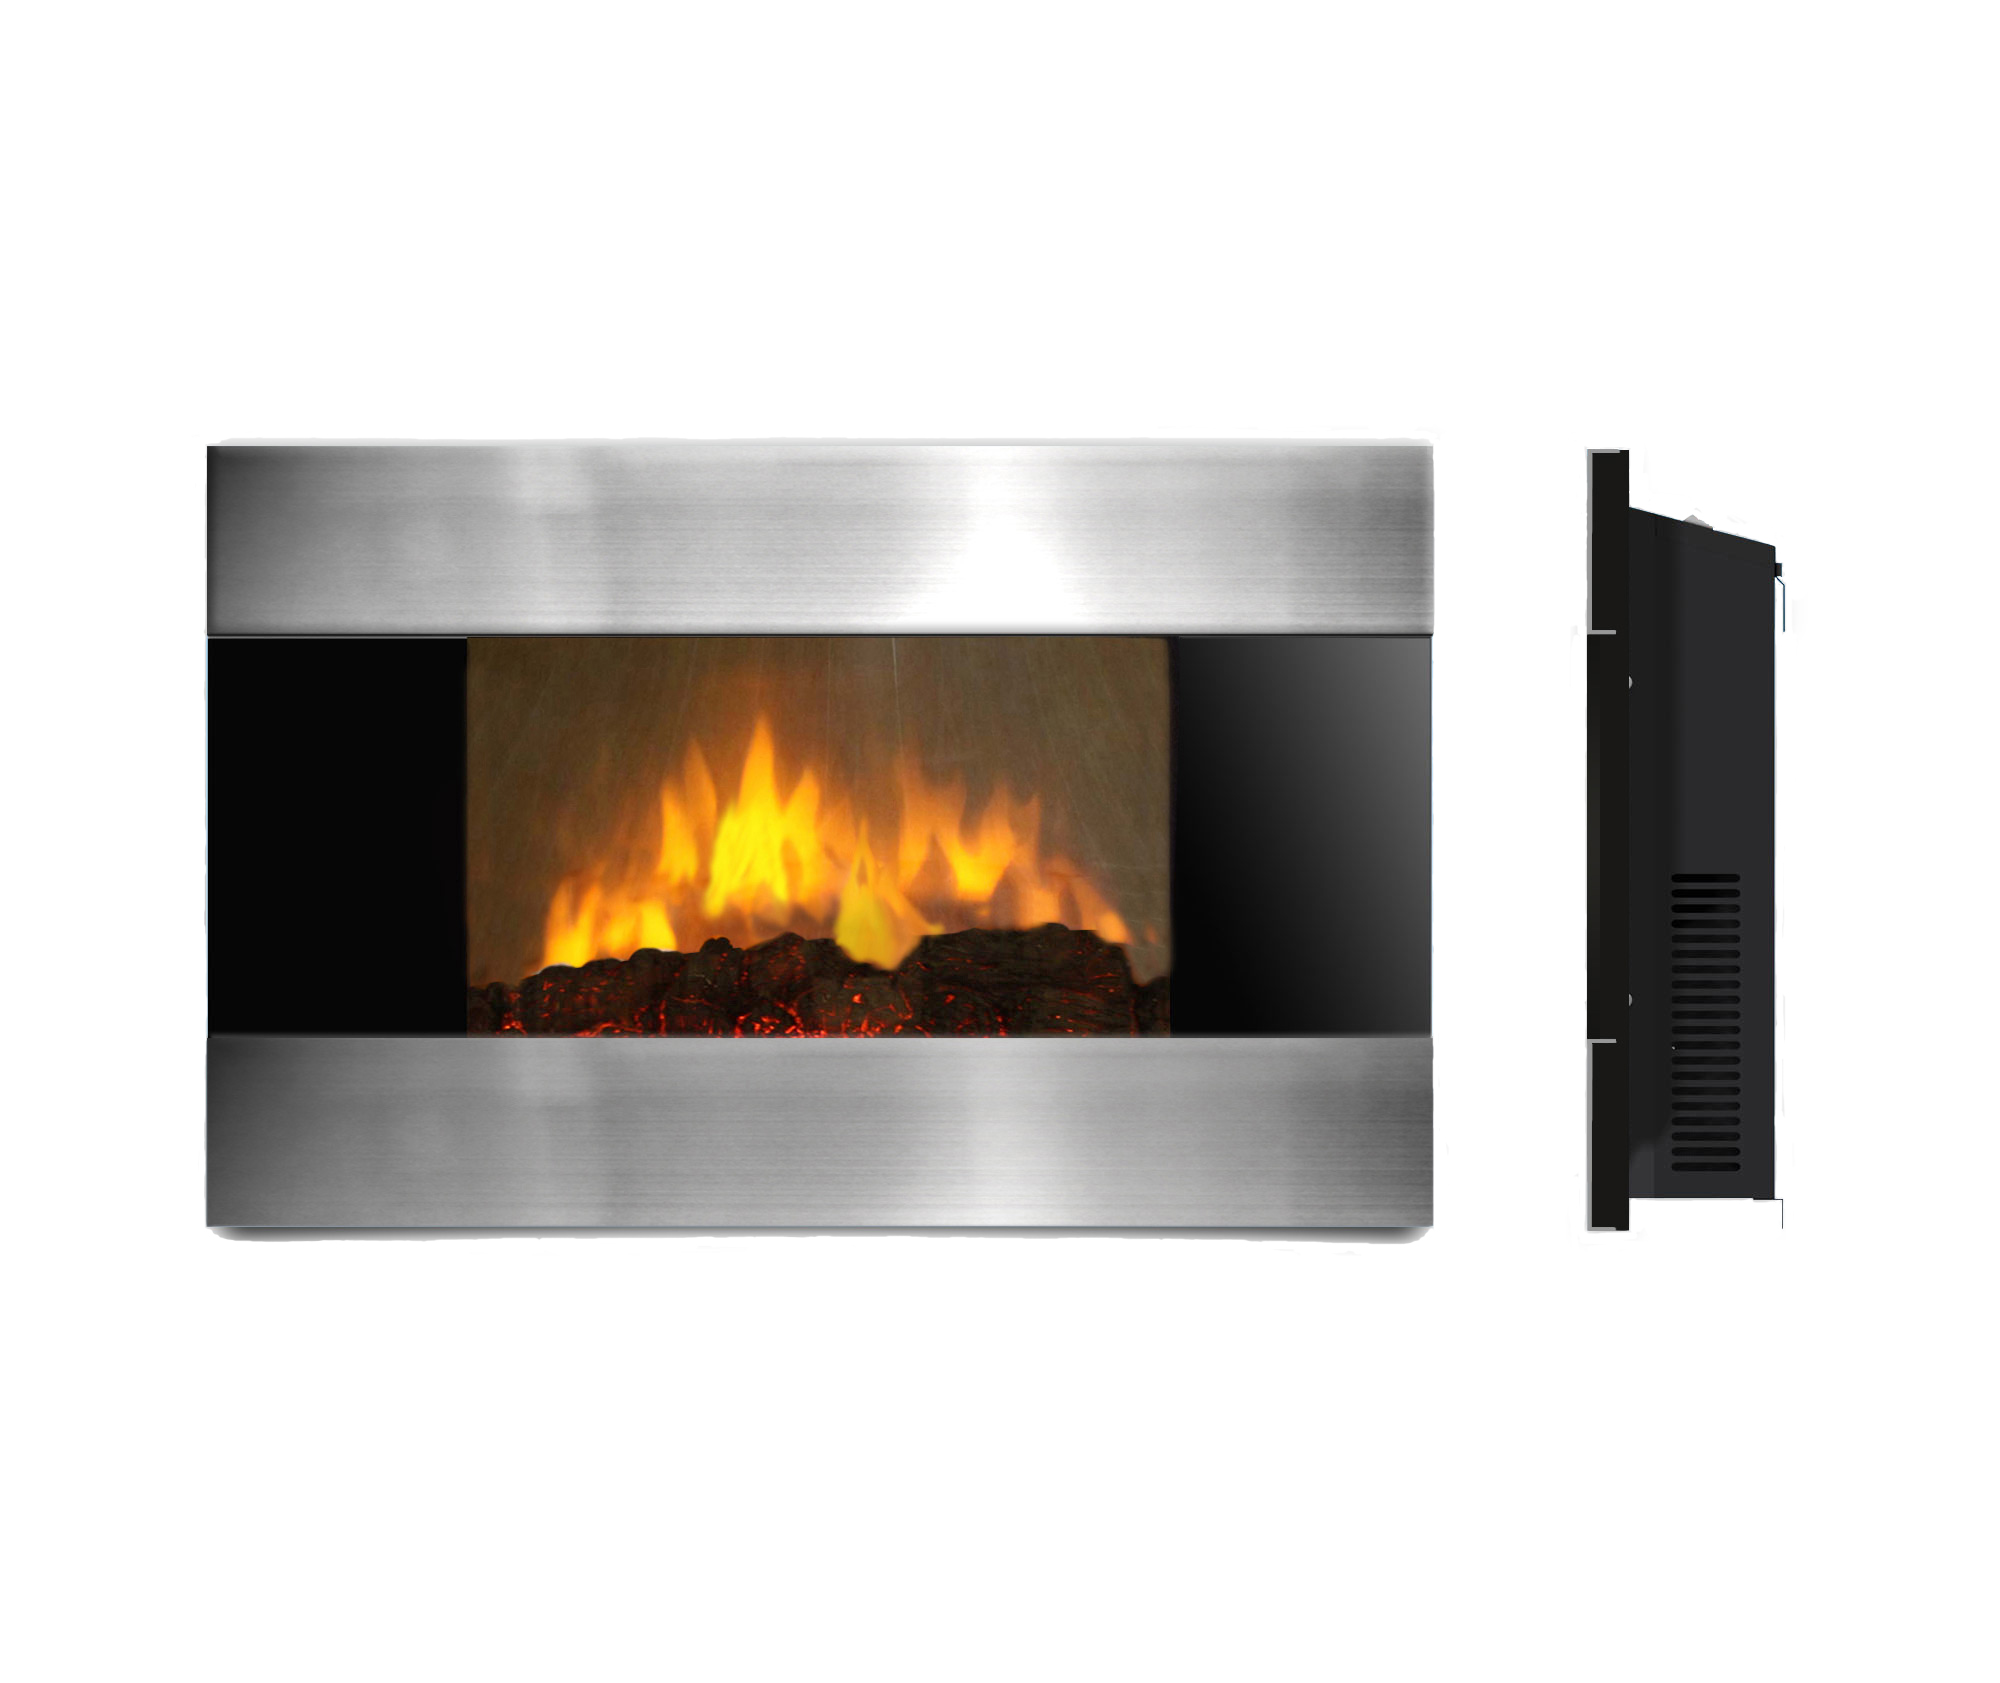 Ambionair flame led wall mounted fireplace ef 1510 sl for Fireplace wall